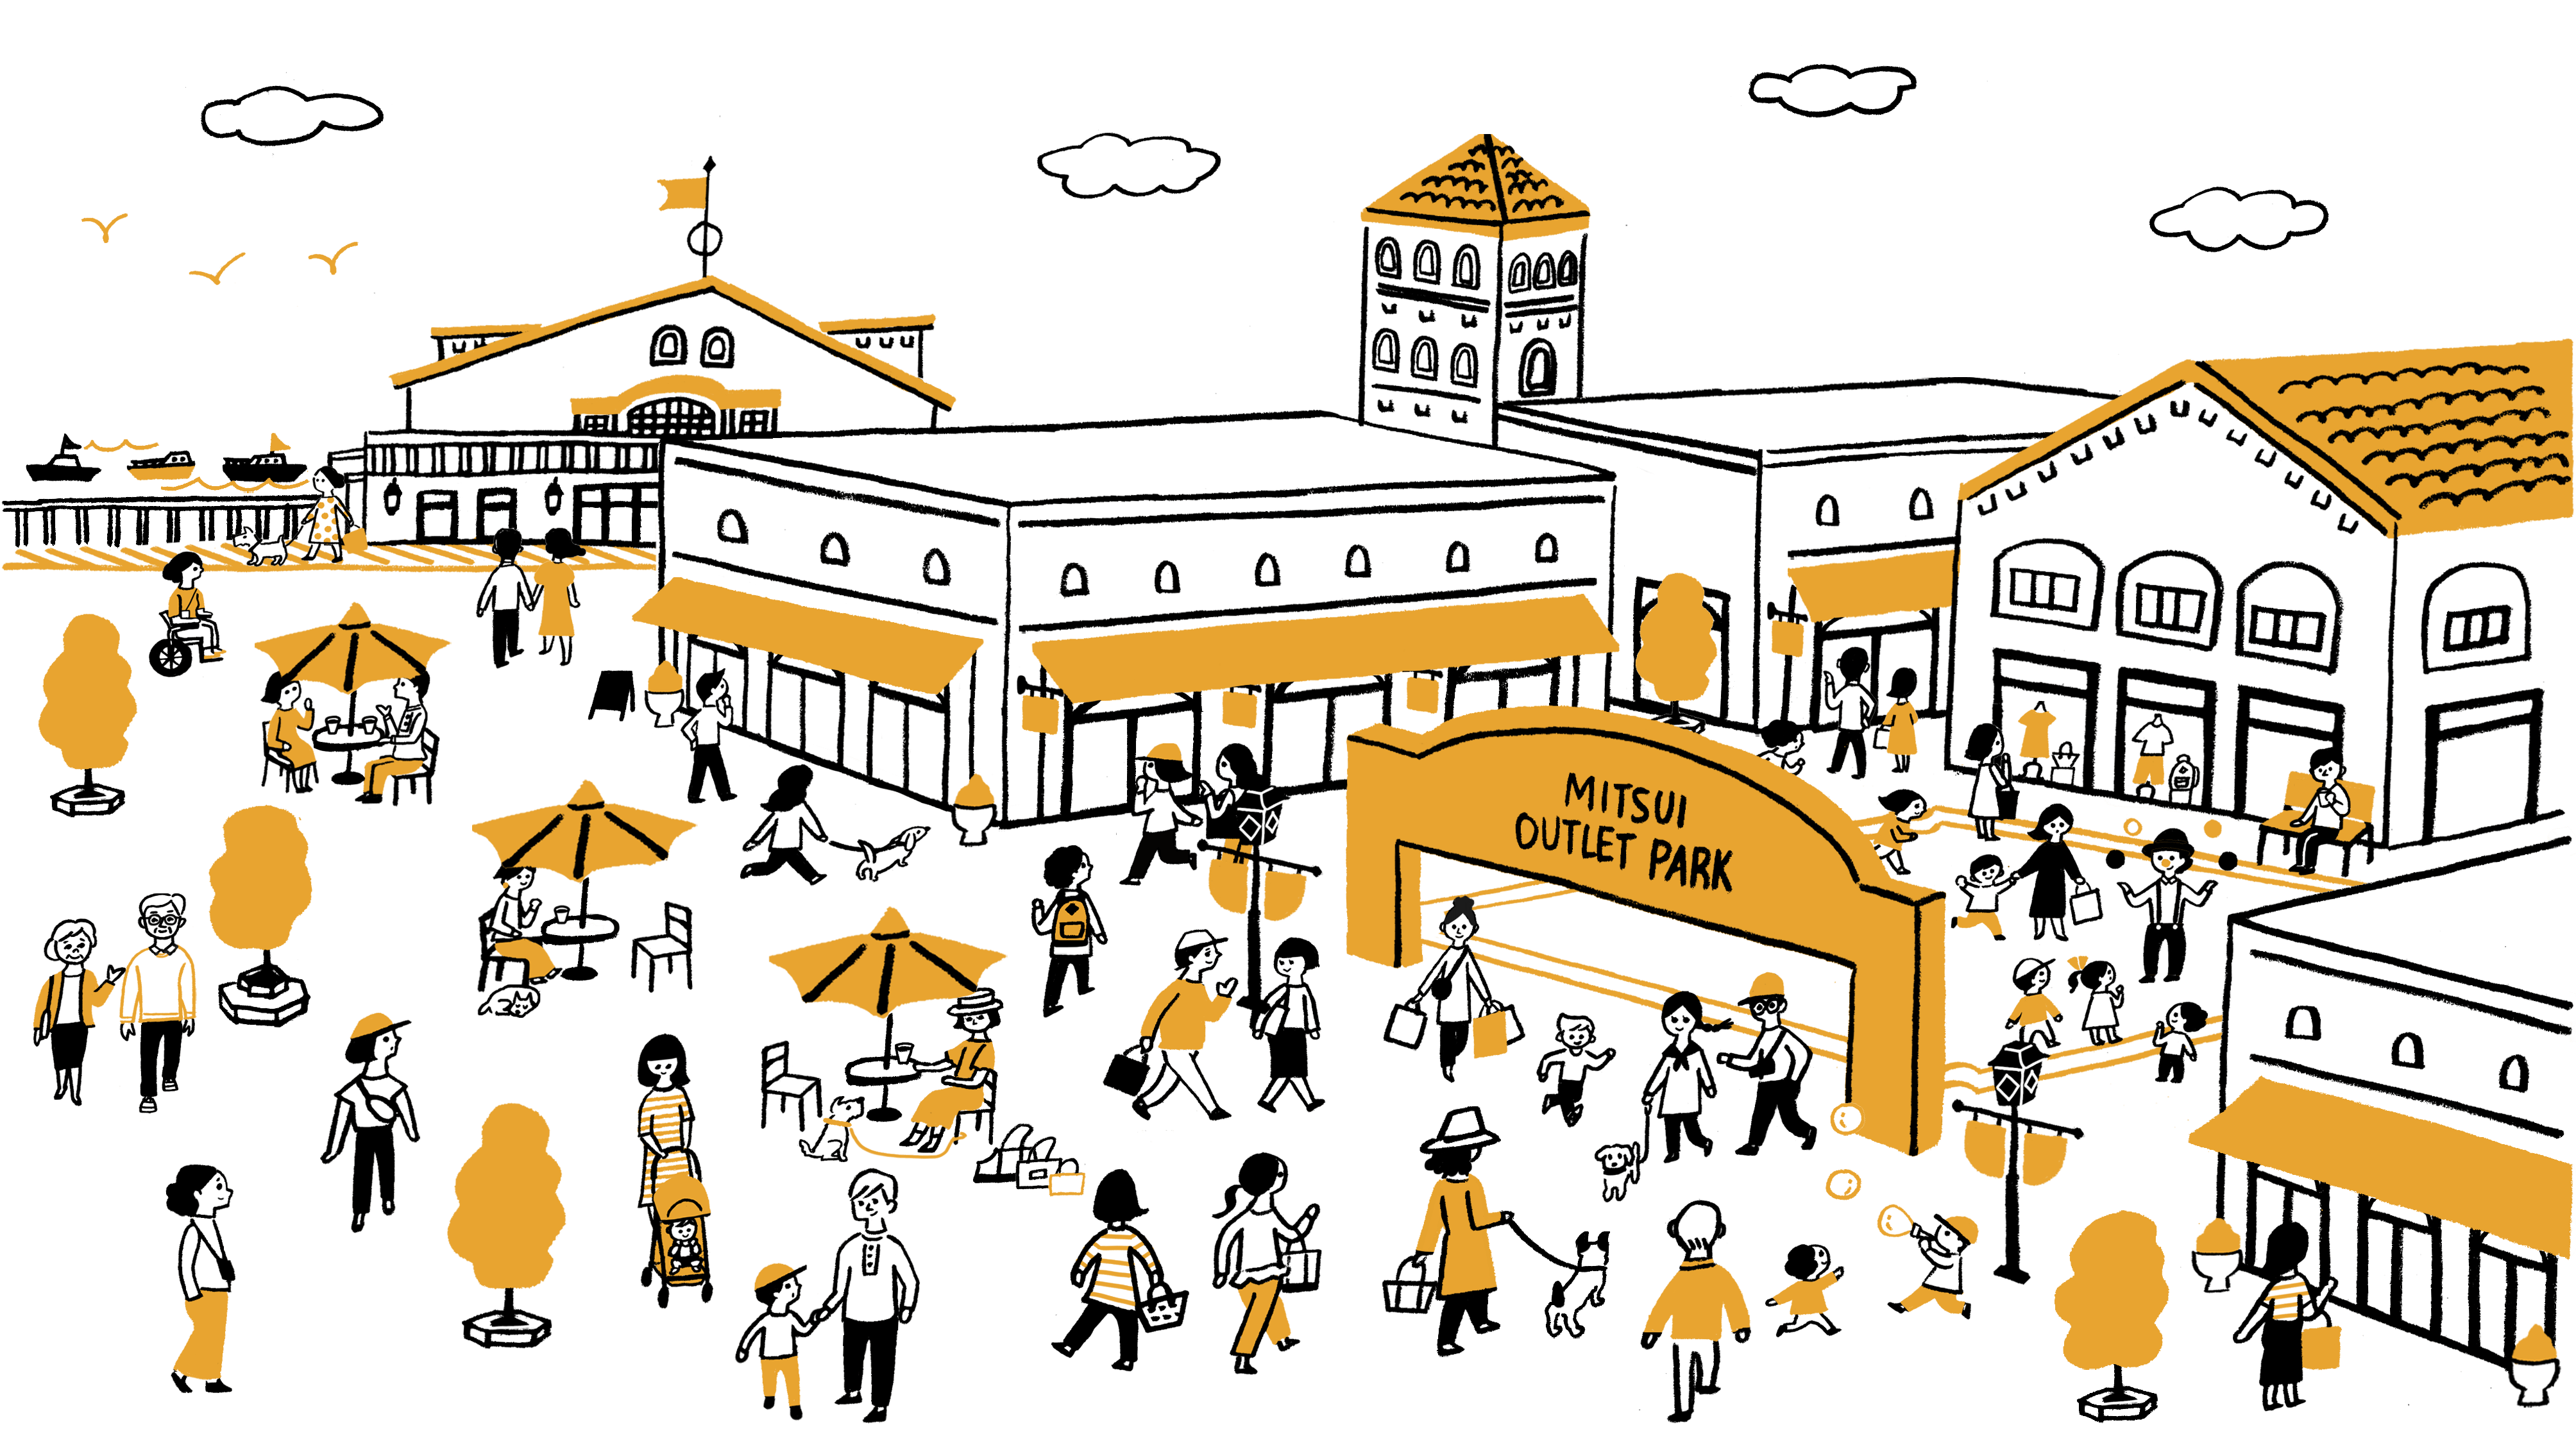 https://mitsui-shopping-park.com/mop/special/enjoy-holiday/assets/img/visual-illust.png